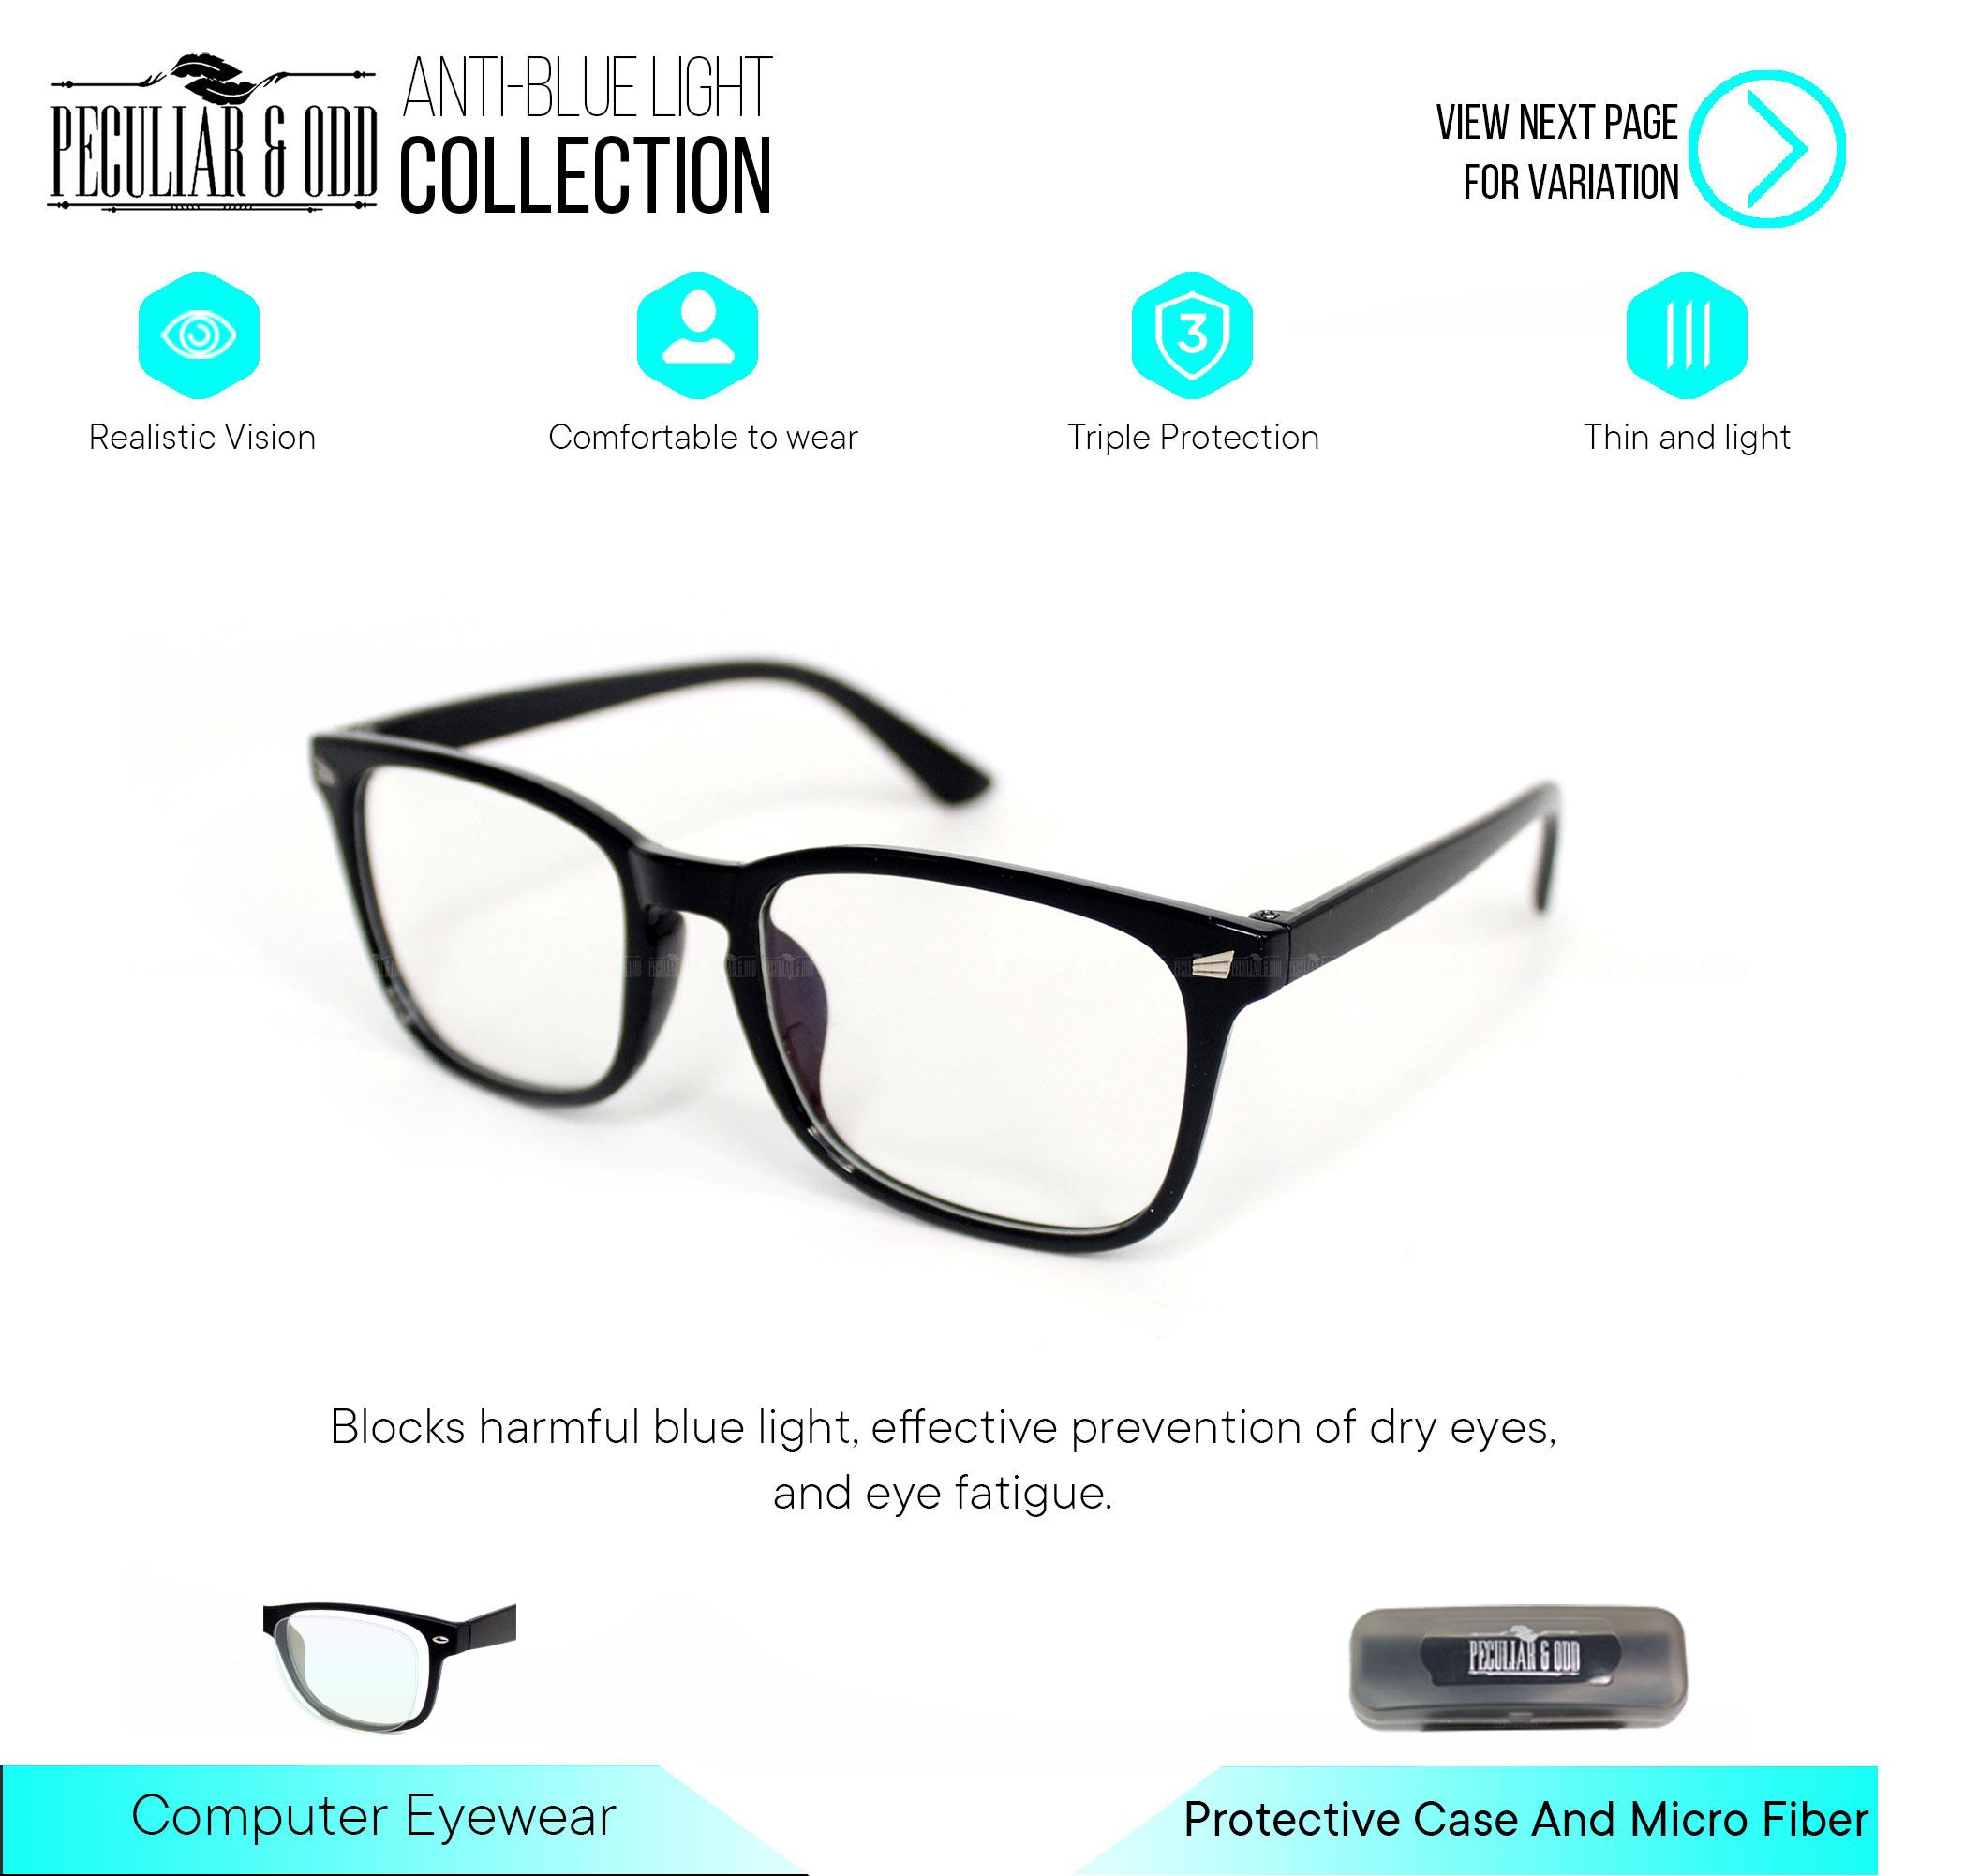 Peculiar Optical Square 15969_sanblack Anti Radiation Blue Lens Computer Eyeglass Replaceable Lenses Unisex Eyewear By Salimars Trading.